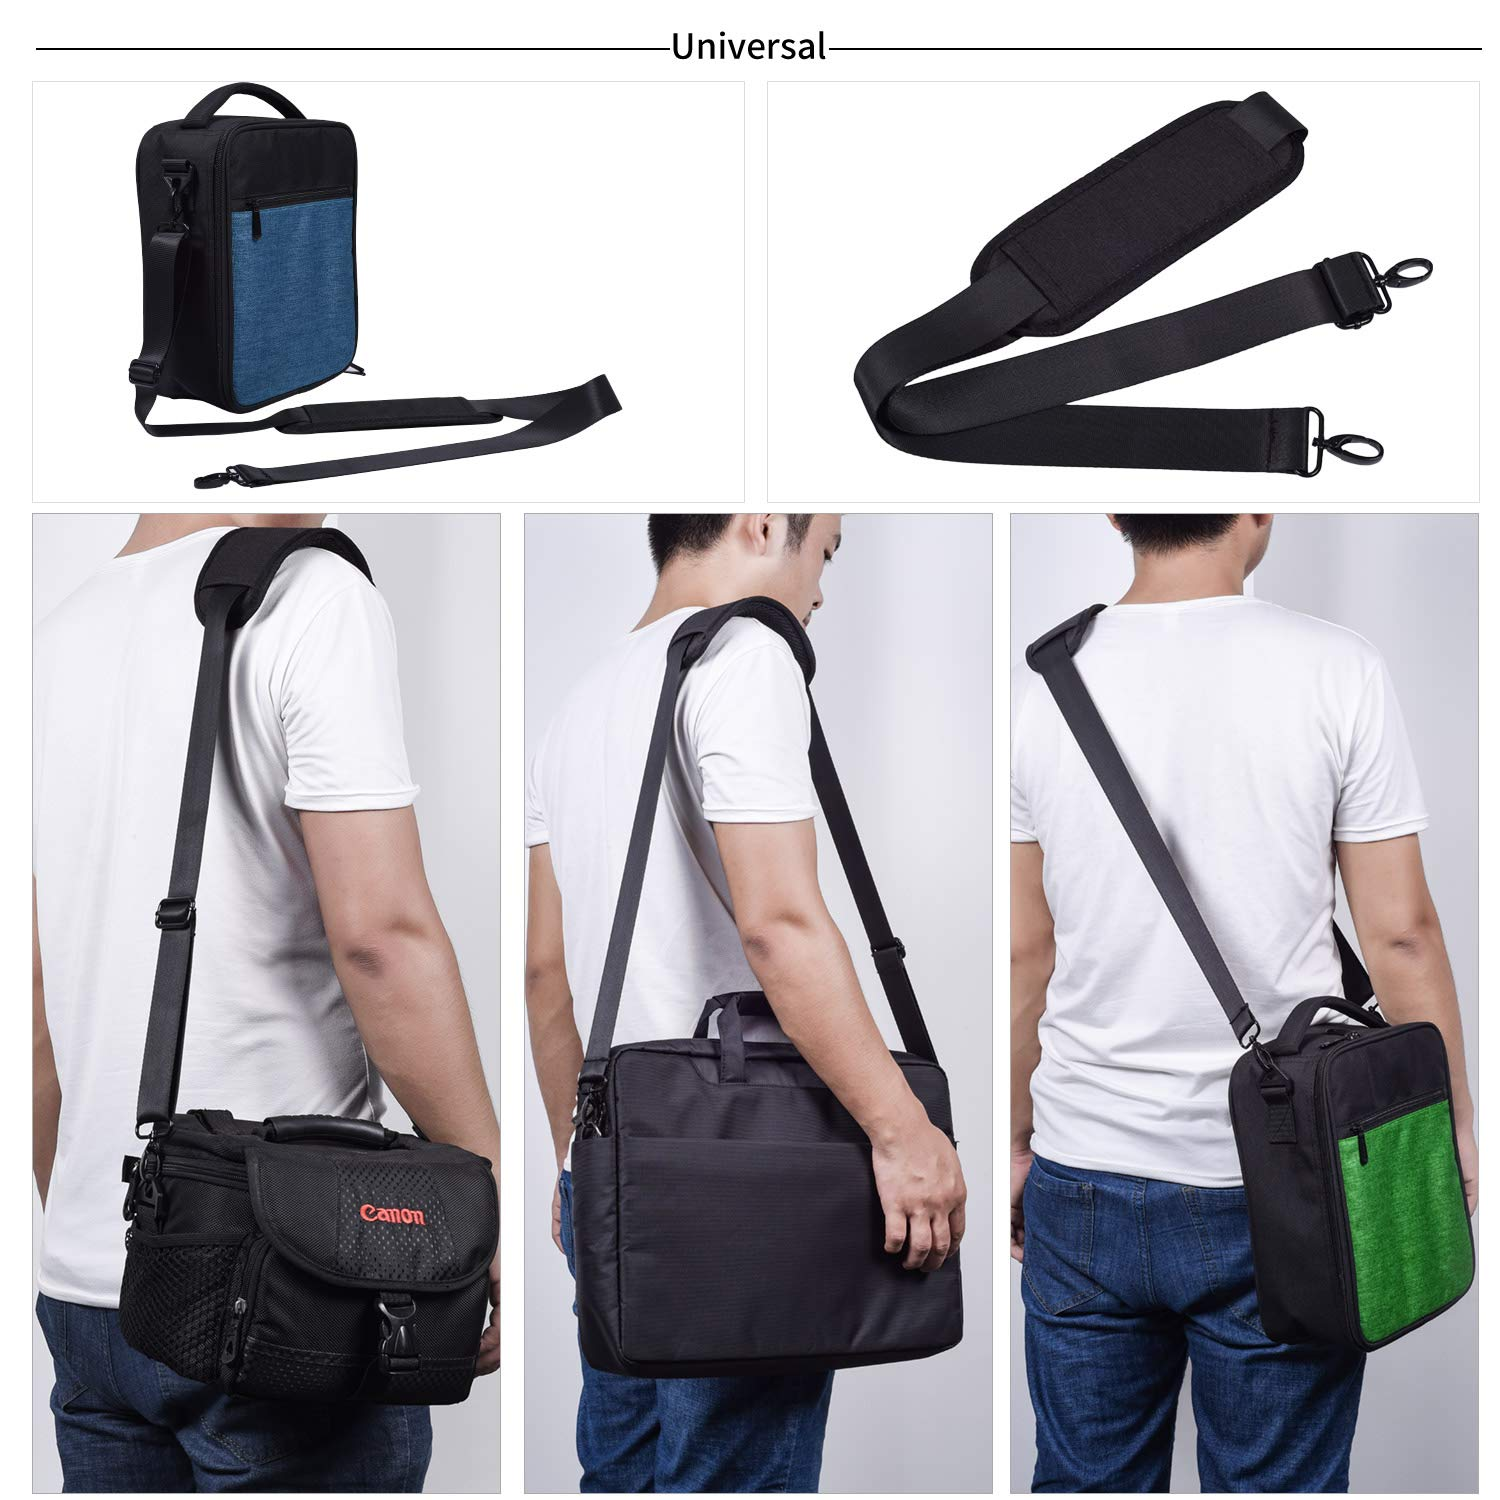 Universal Shoulder Strap Replacement Luggage Duffle Bag Strap Detachable Soft Padded Adjustable Belt with Metal Swivel Hooks Compatible Duffel Briefcase Computer Bags Laptop Case Messenger Bag, Black by CaseBuy (Image #7)